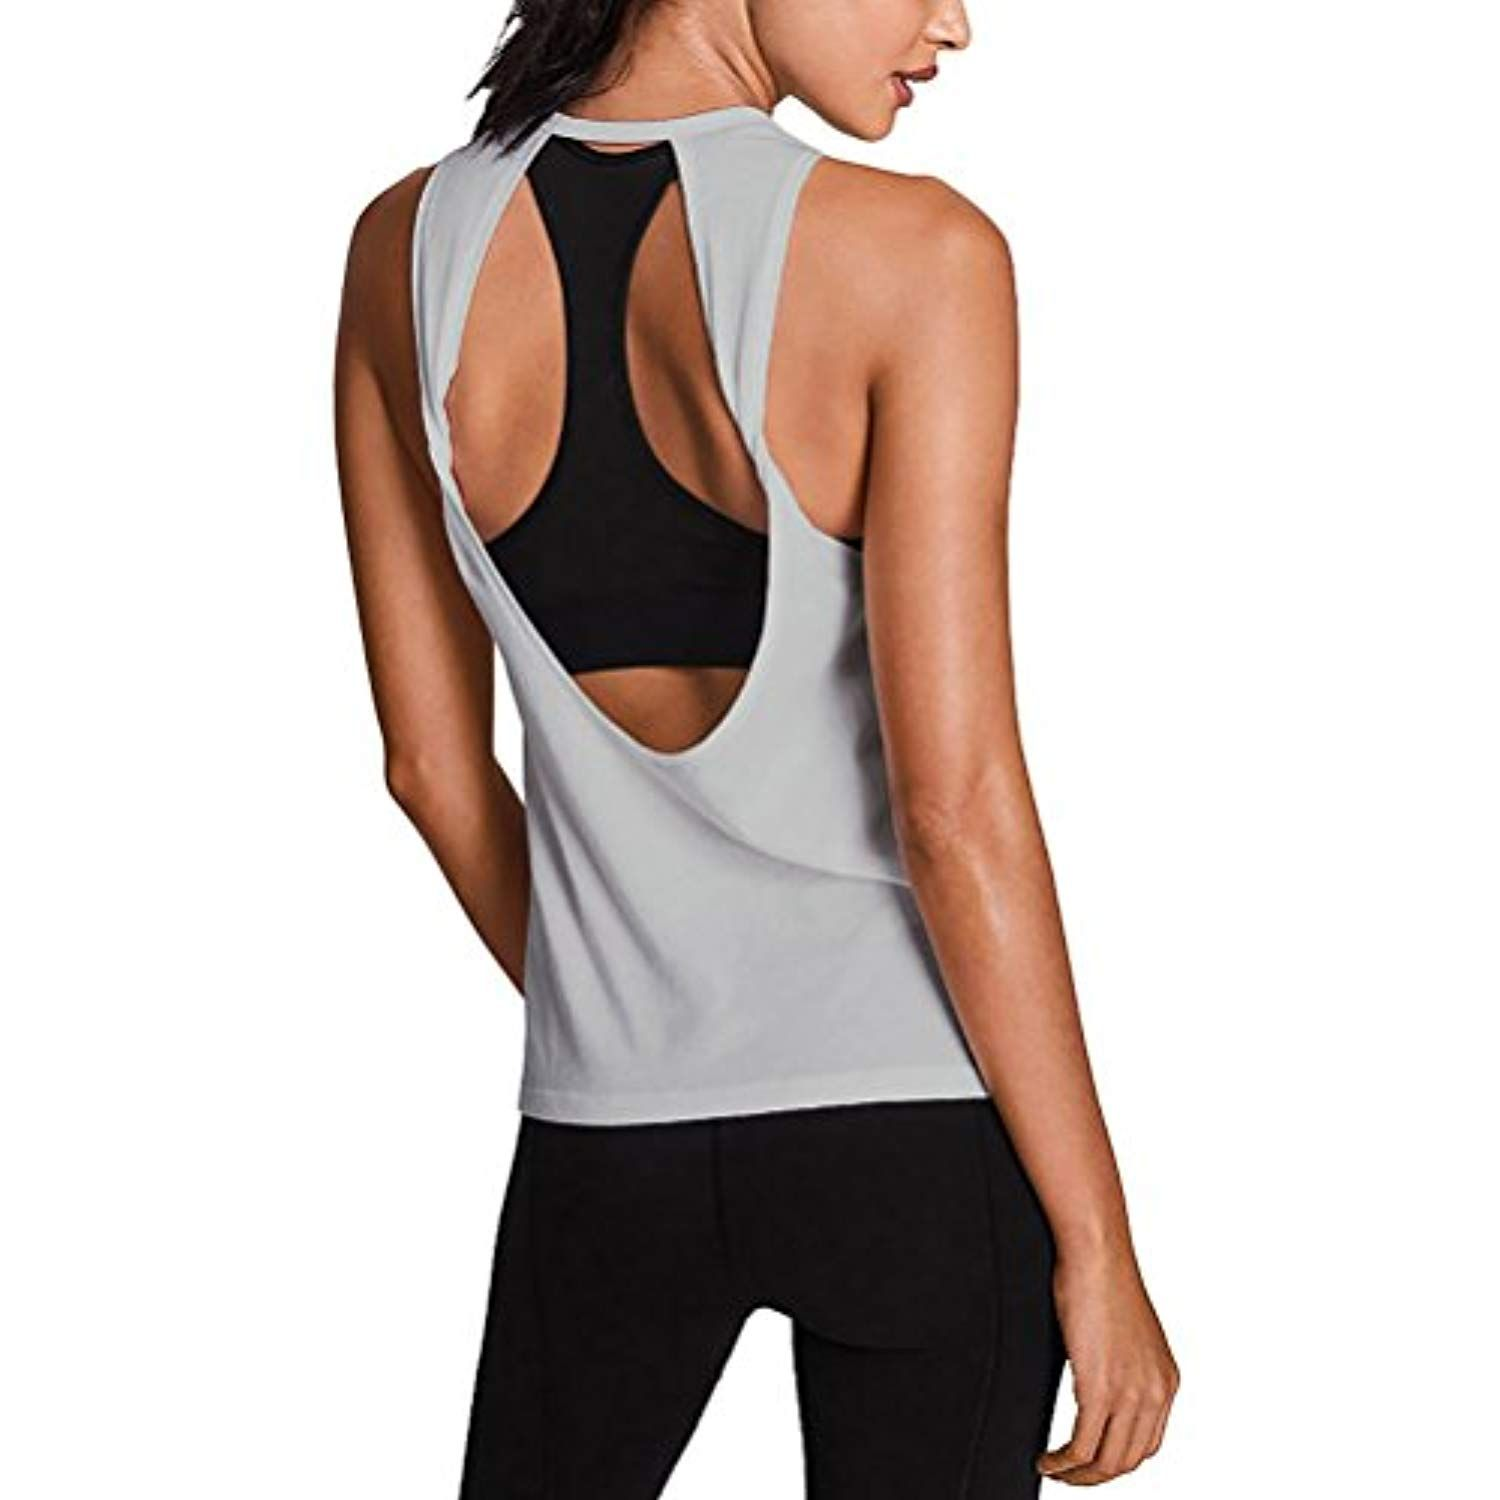 389f16df7c1f00 Mippo Women s Sexy Yoga Shirts Workout Clothes Soft Open Back Sports Tank  Tops    Learn more by visiting the image link. (This is an affiliate link)    ...